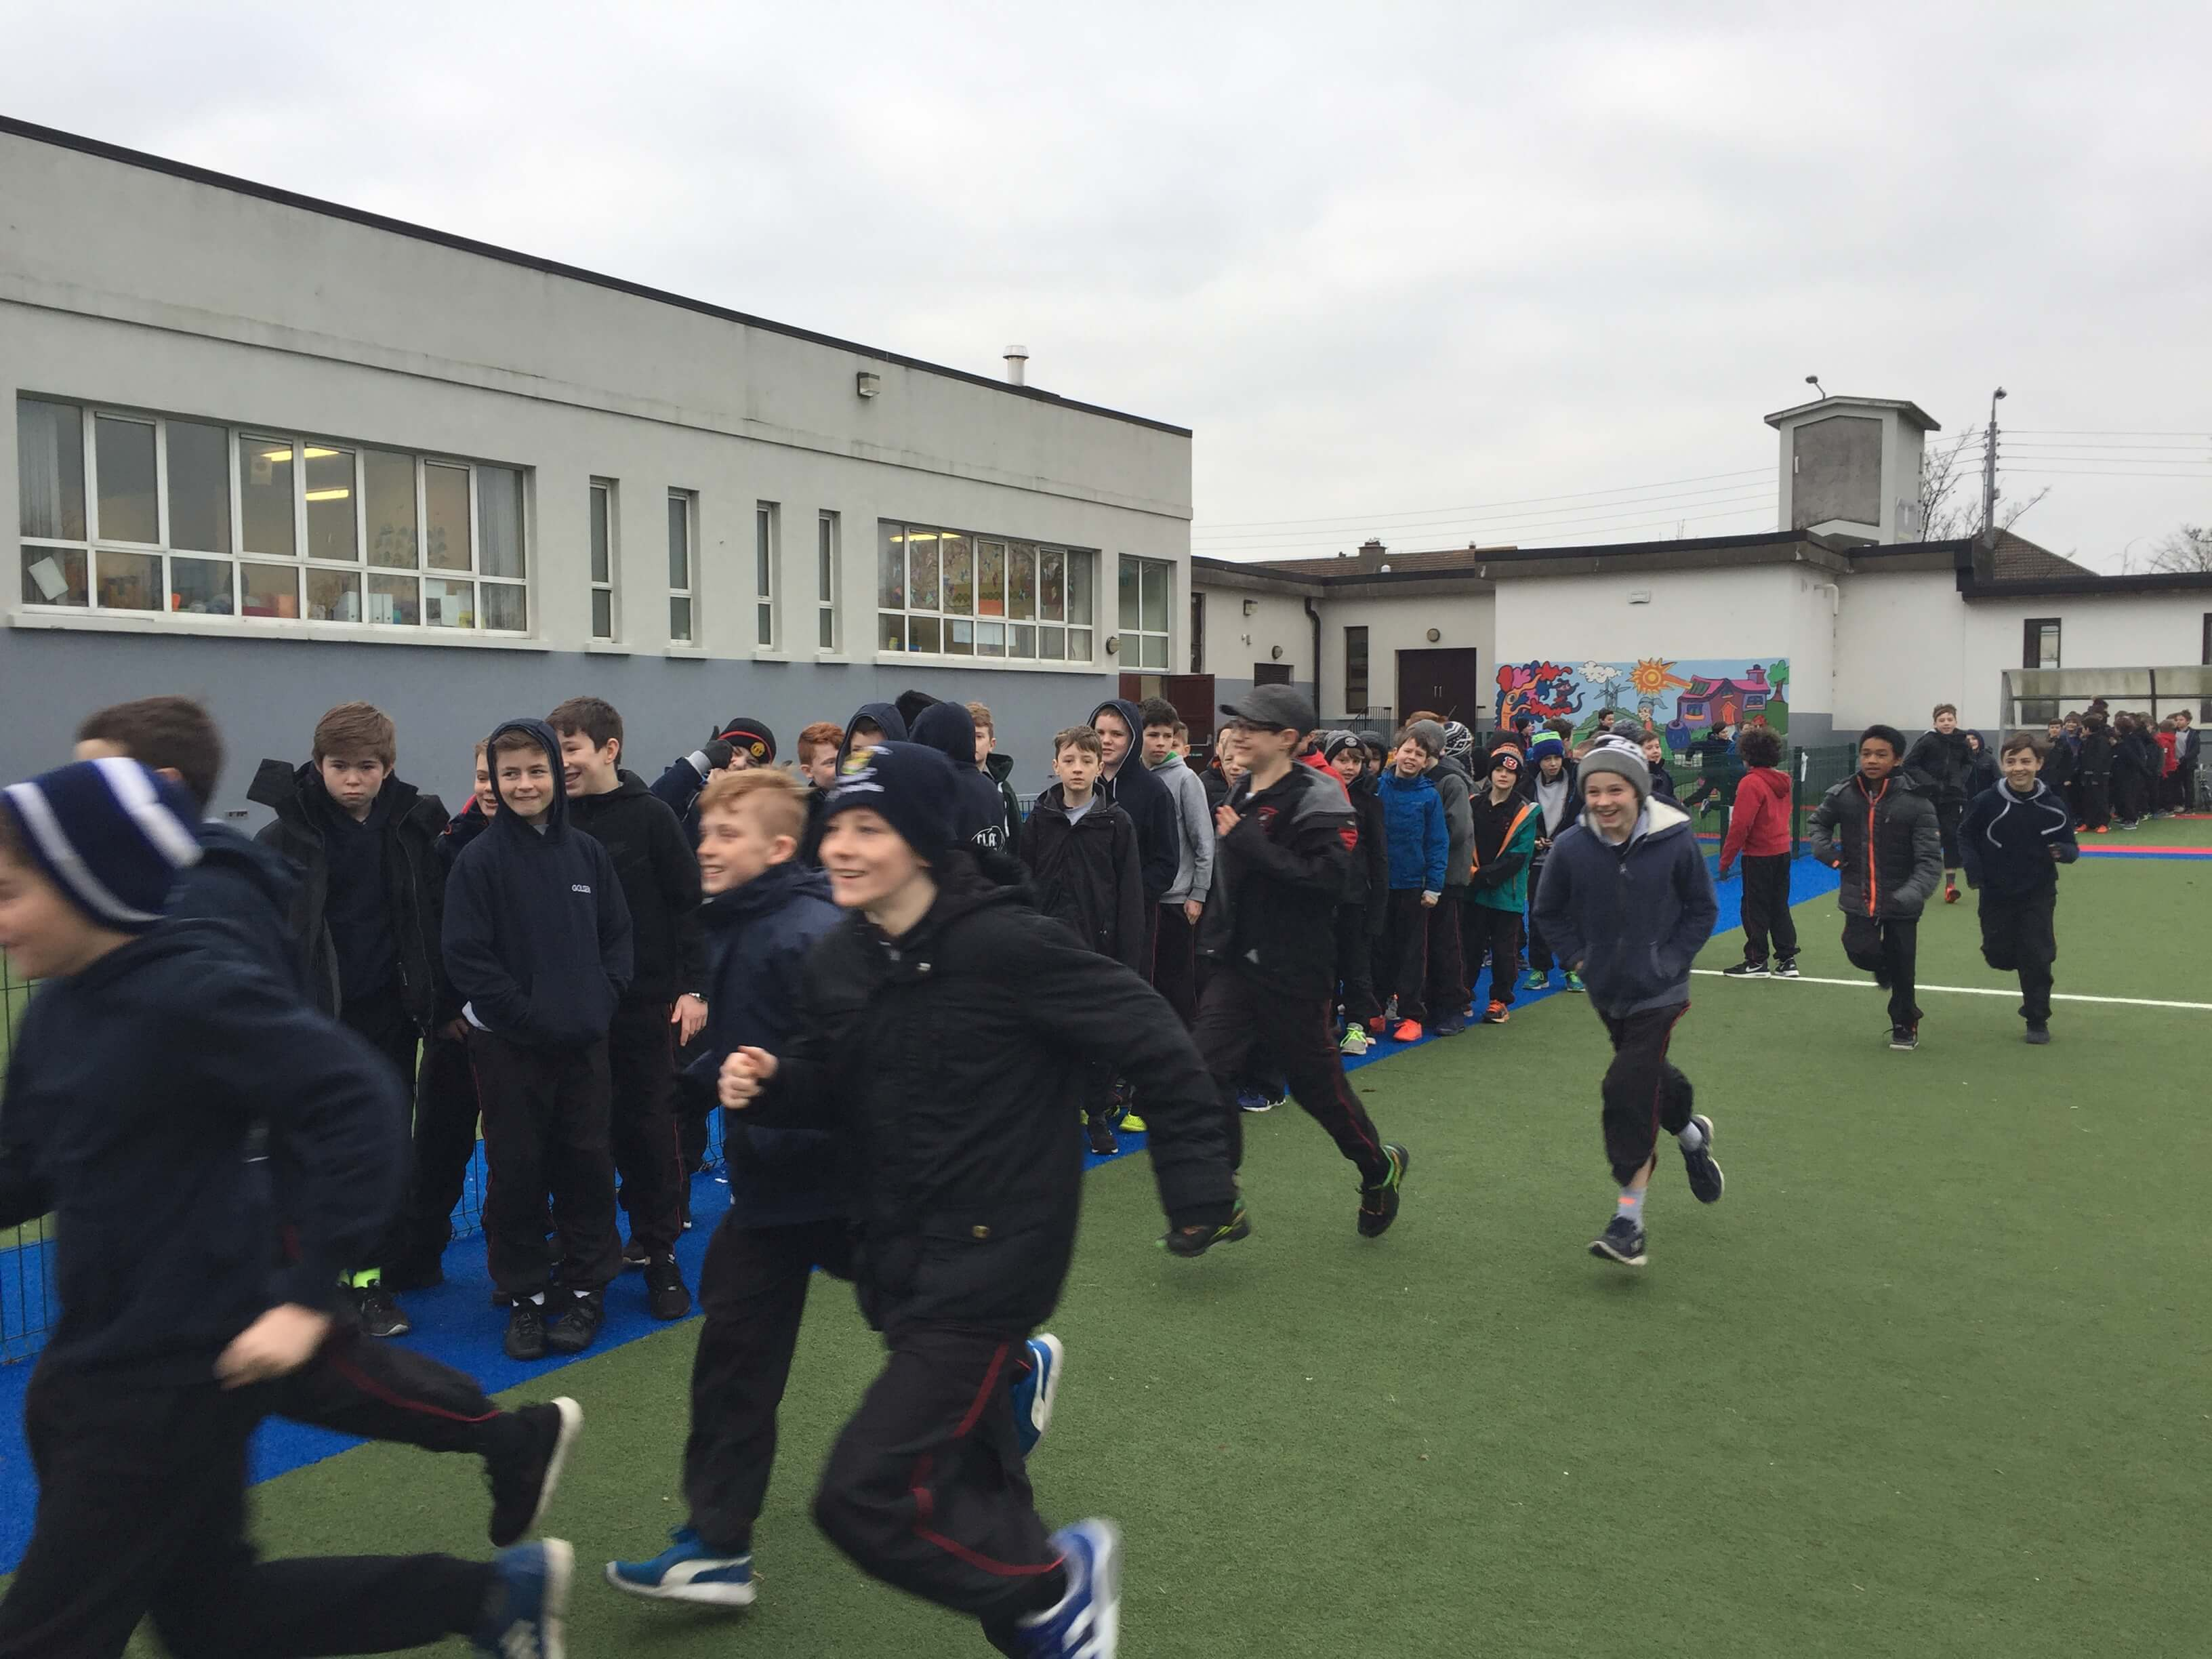 A photo of a St Laurences BNS students marching in the school yard on Active Day